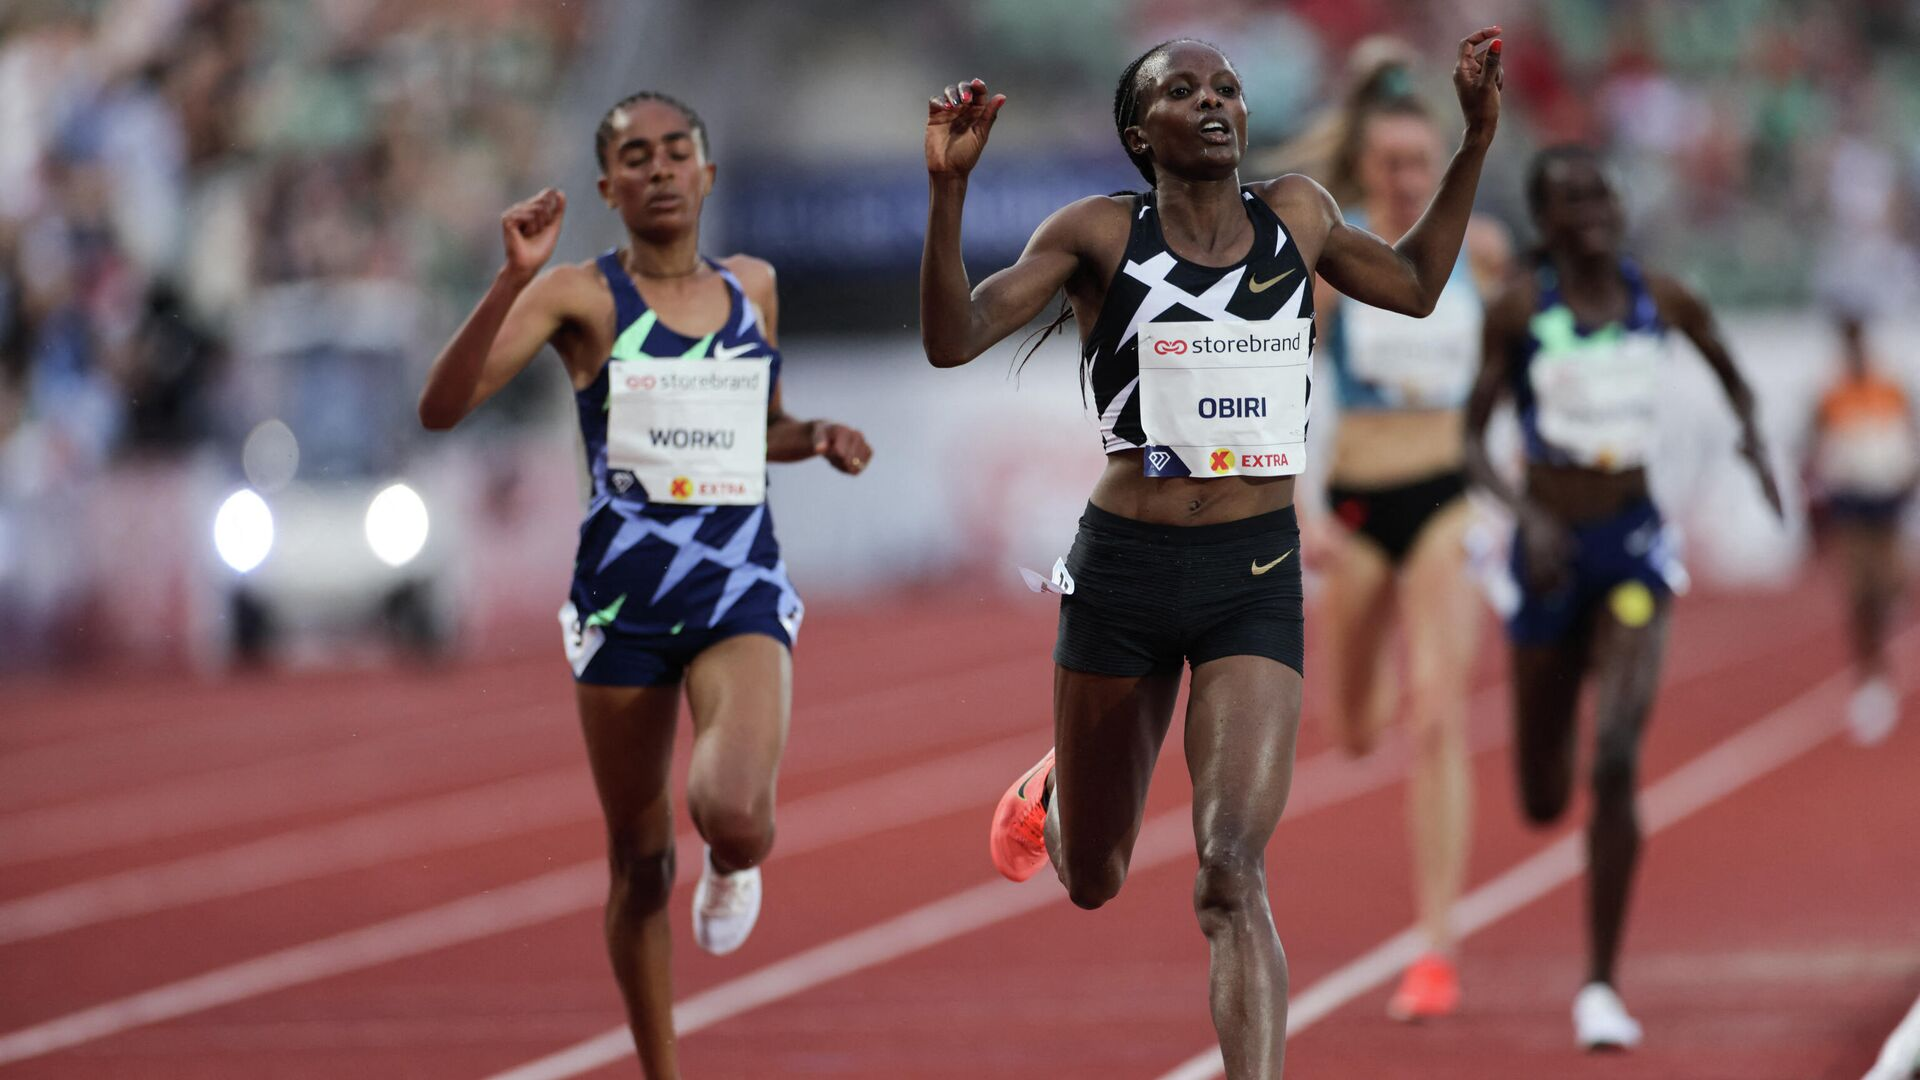 Hellen OBIRI from Kenya (R) and Fantu WORKU from Ethiopia compete in the 5000M women final at the Diamond League track and field meeting in Oslo on July 1, 2021. (Photo by STR / Diamond League AG) - РИА Новости, 1920, 02.07.2021